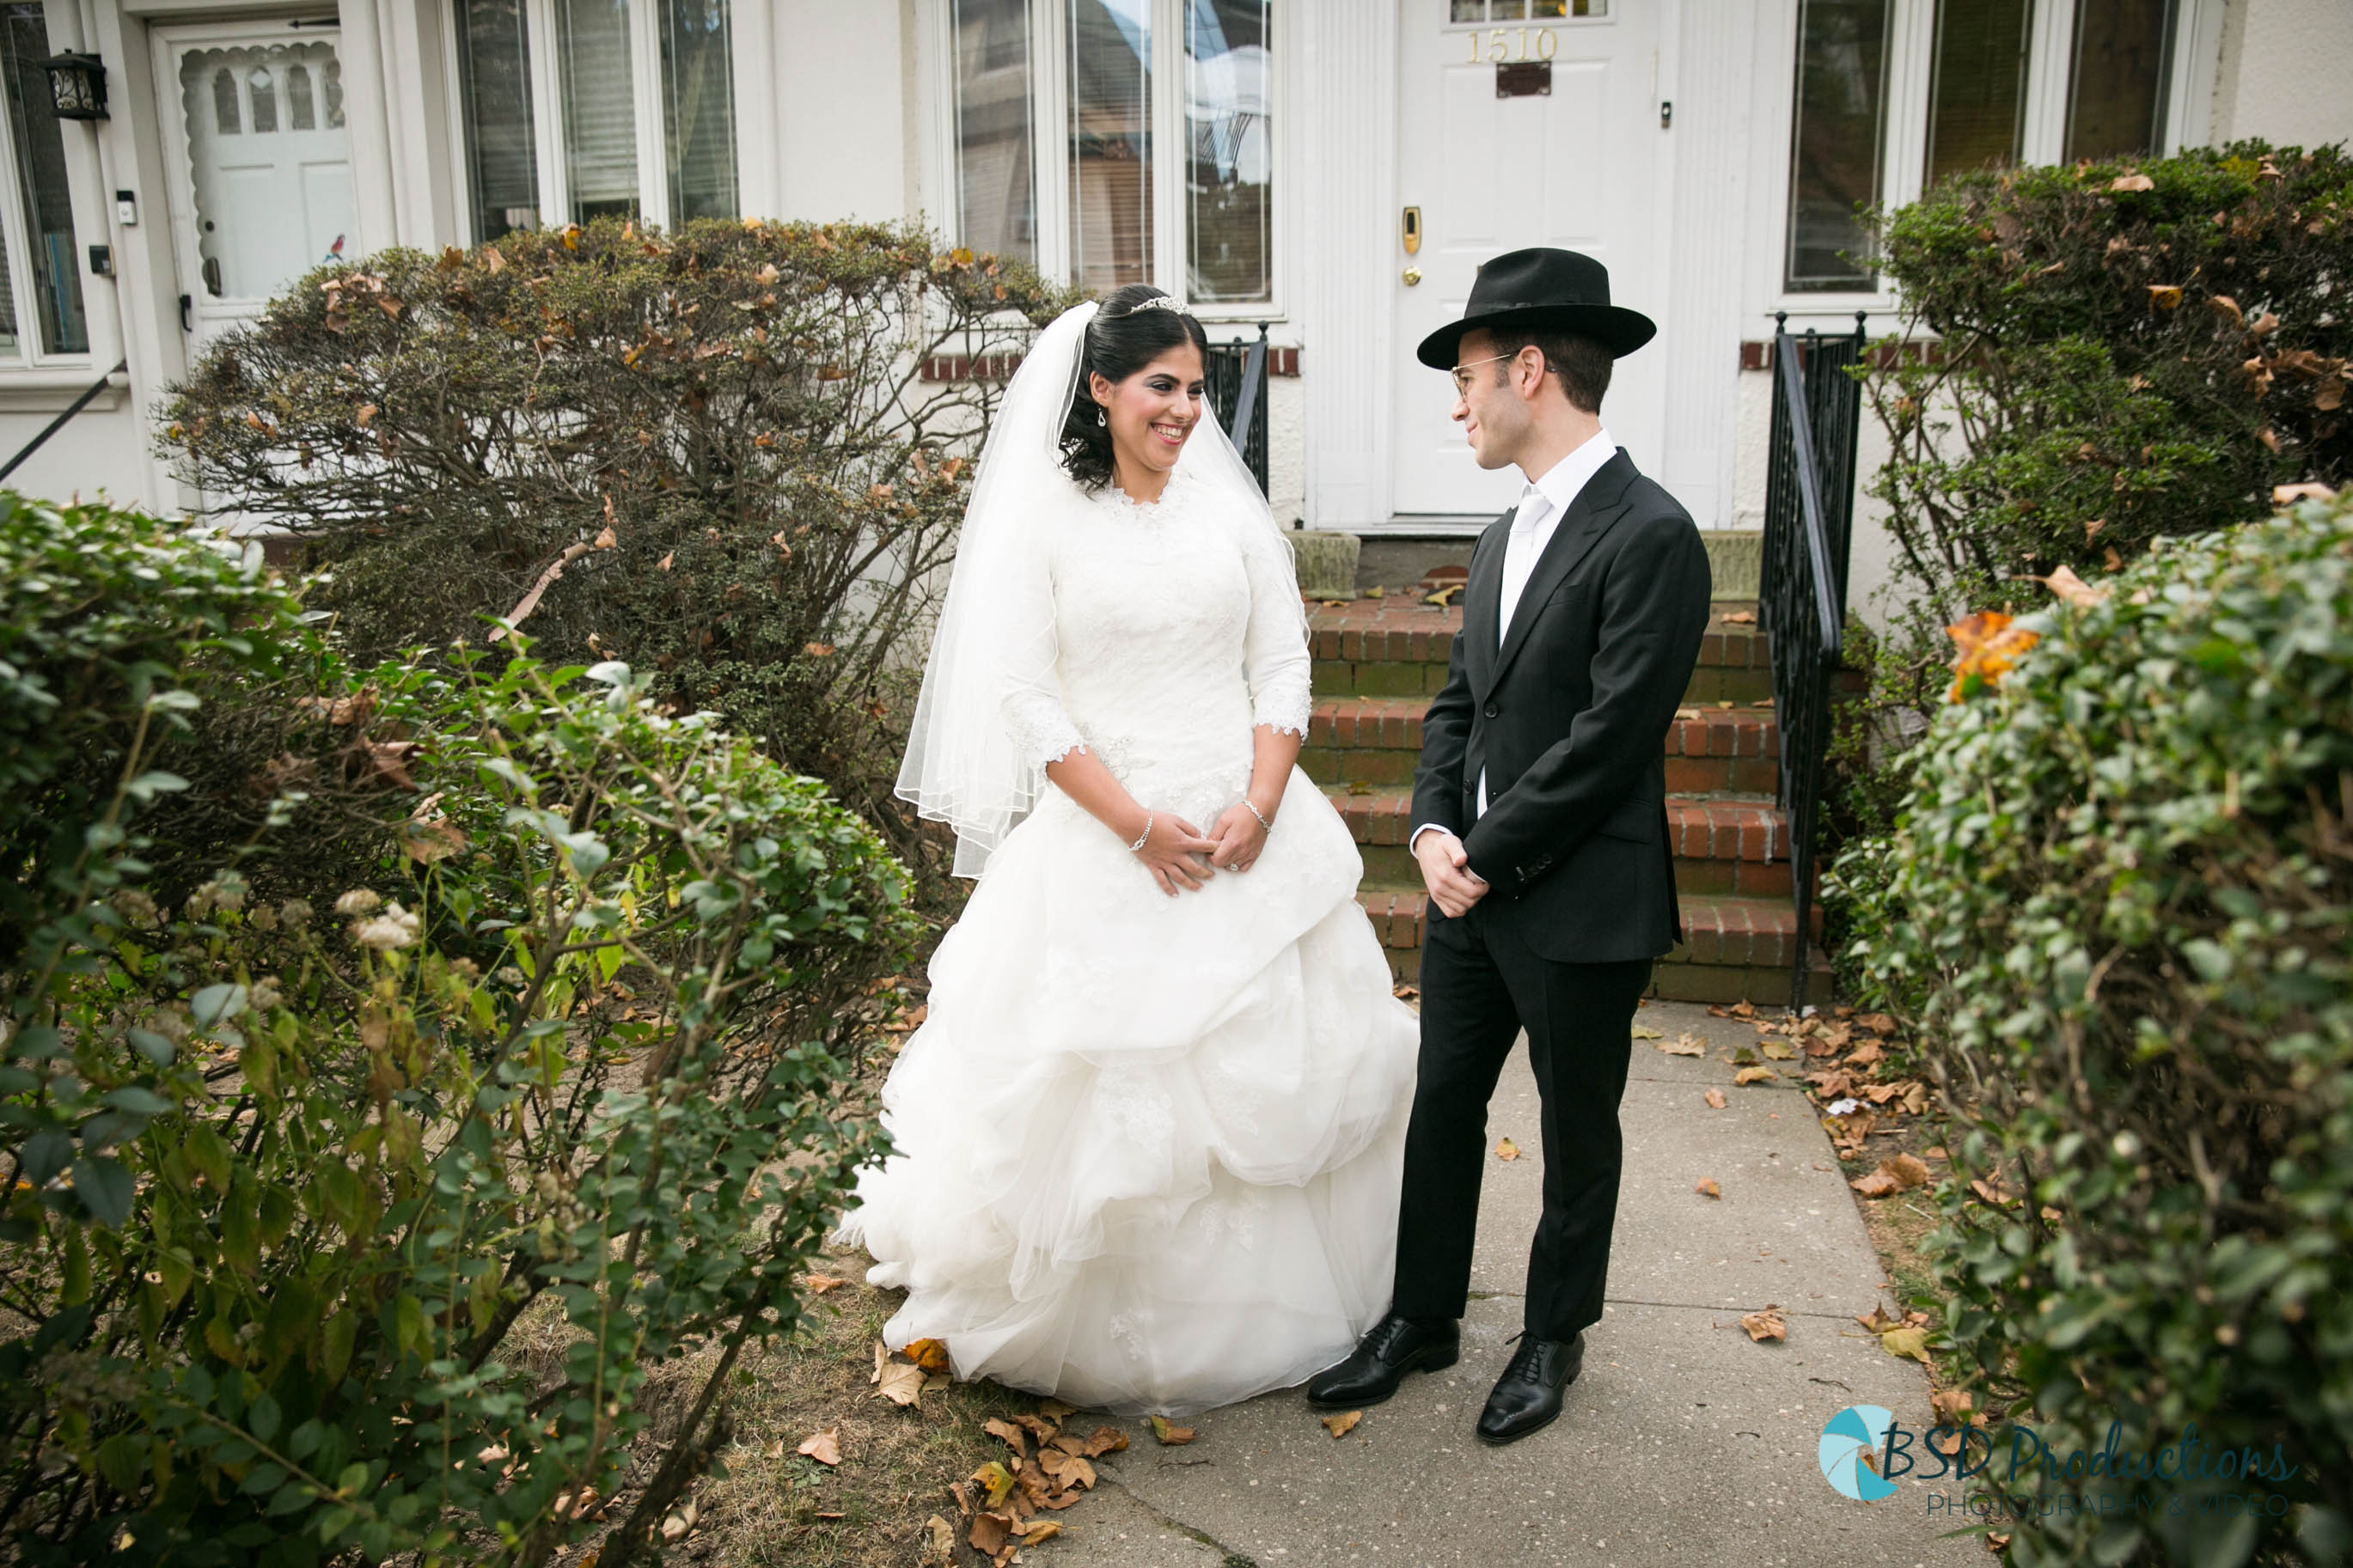 UH5A9995 Wedding – BSD Productions Photography